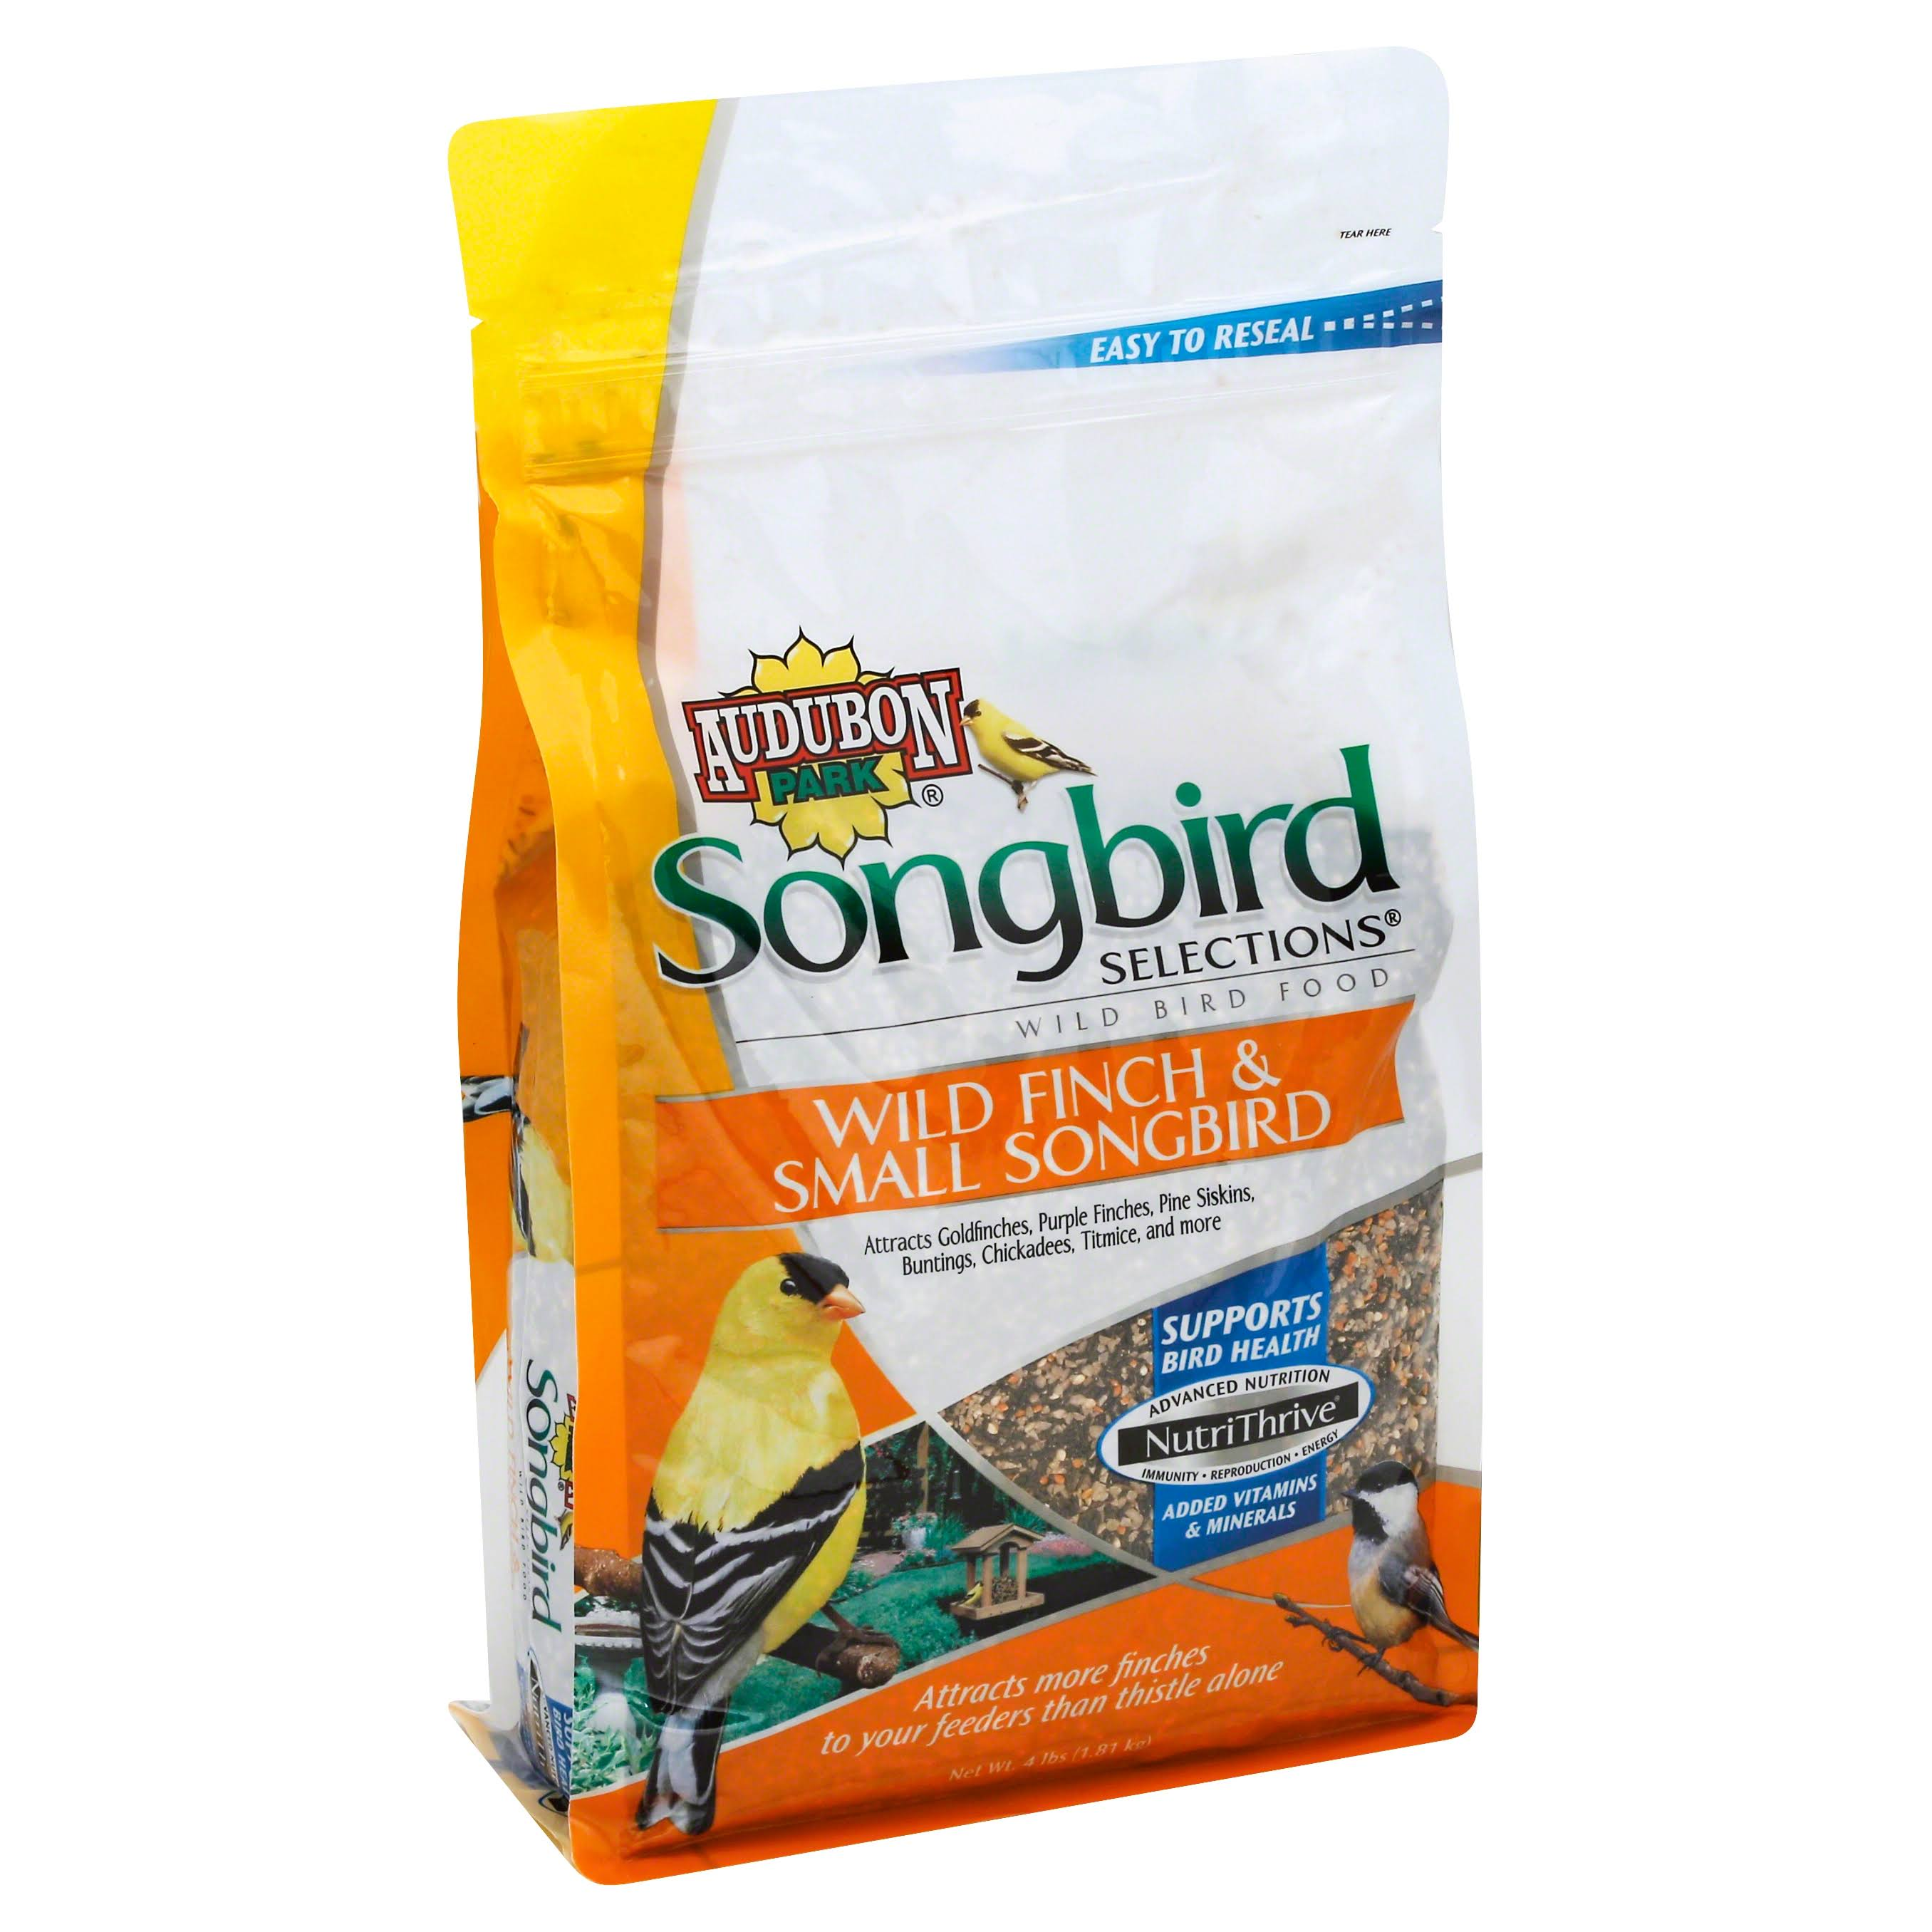 Songbird Selections 11978 Wild Finch and Small Songbird Wild Bird Food - 4lb